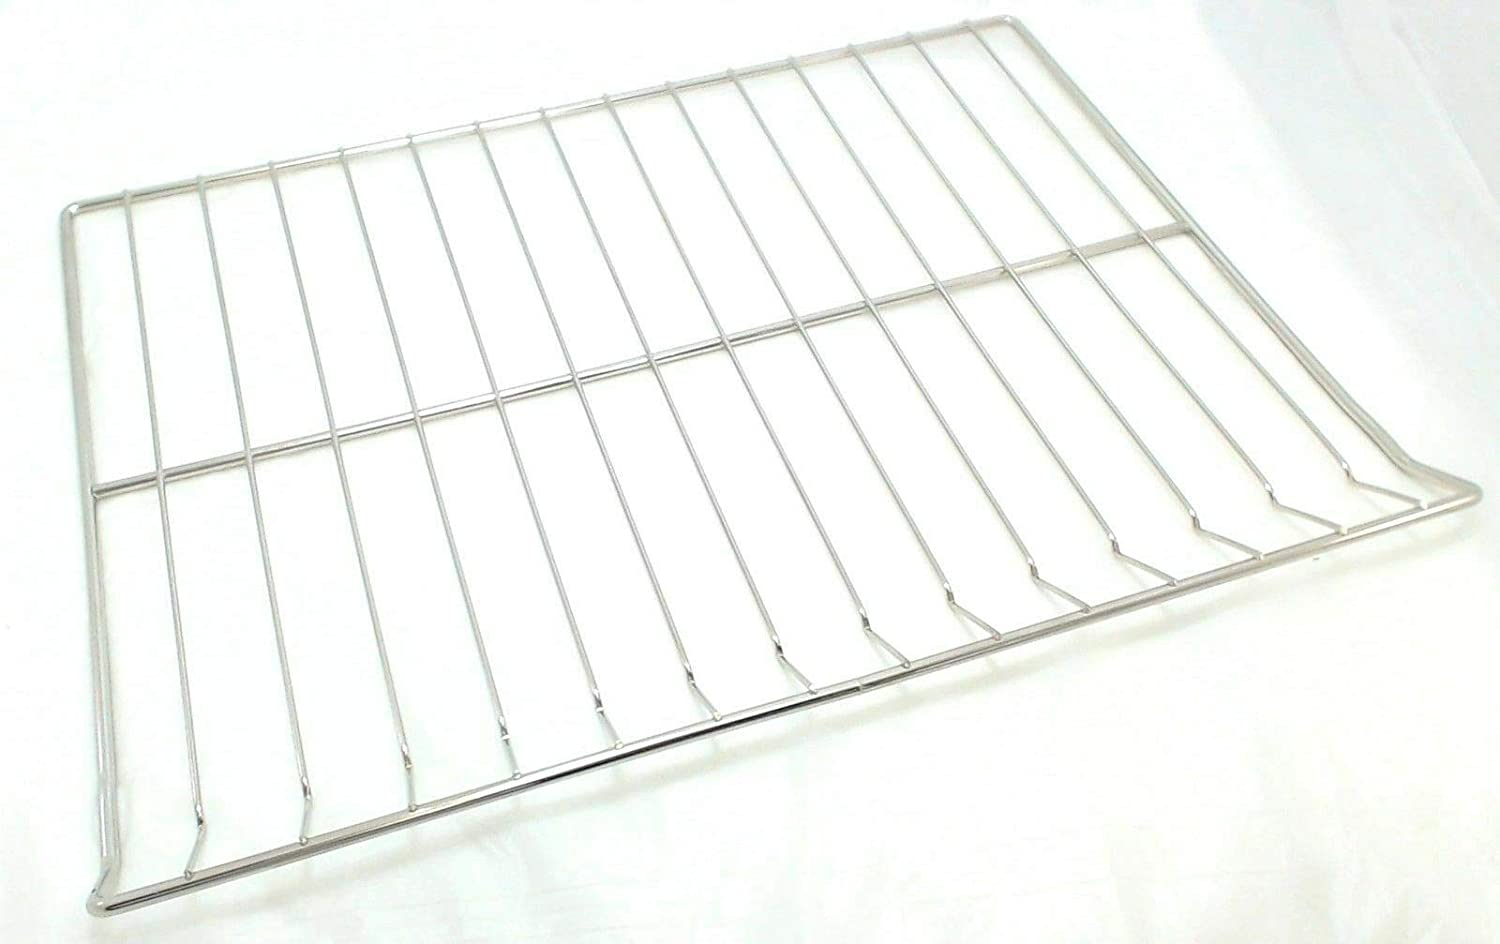 WB48M4 Oven Rack fit General Electric AP2624599 PS249568 RB